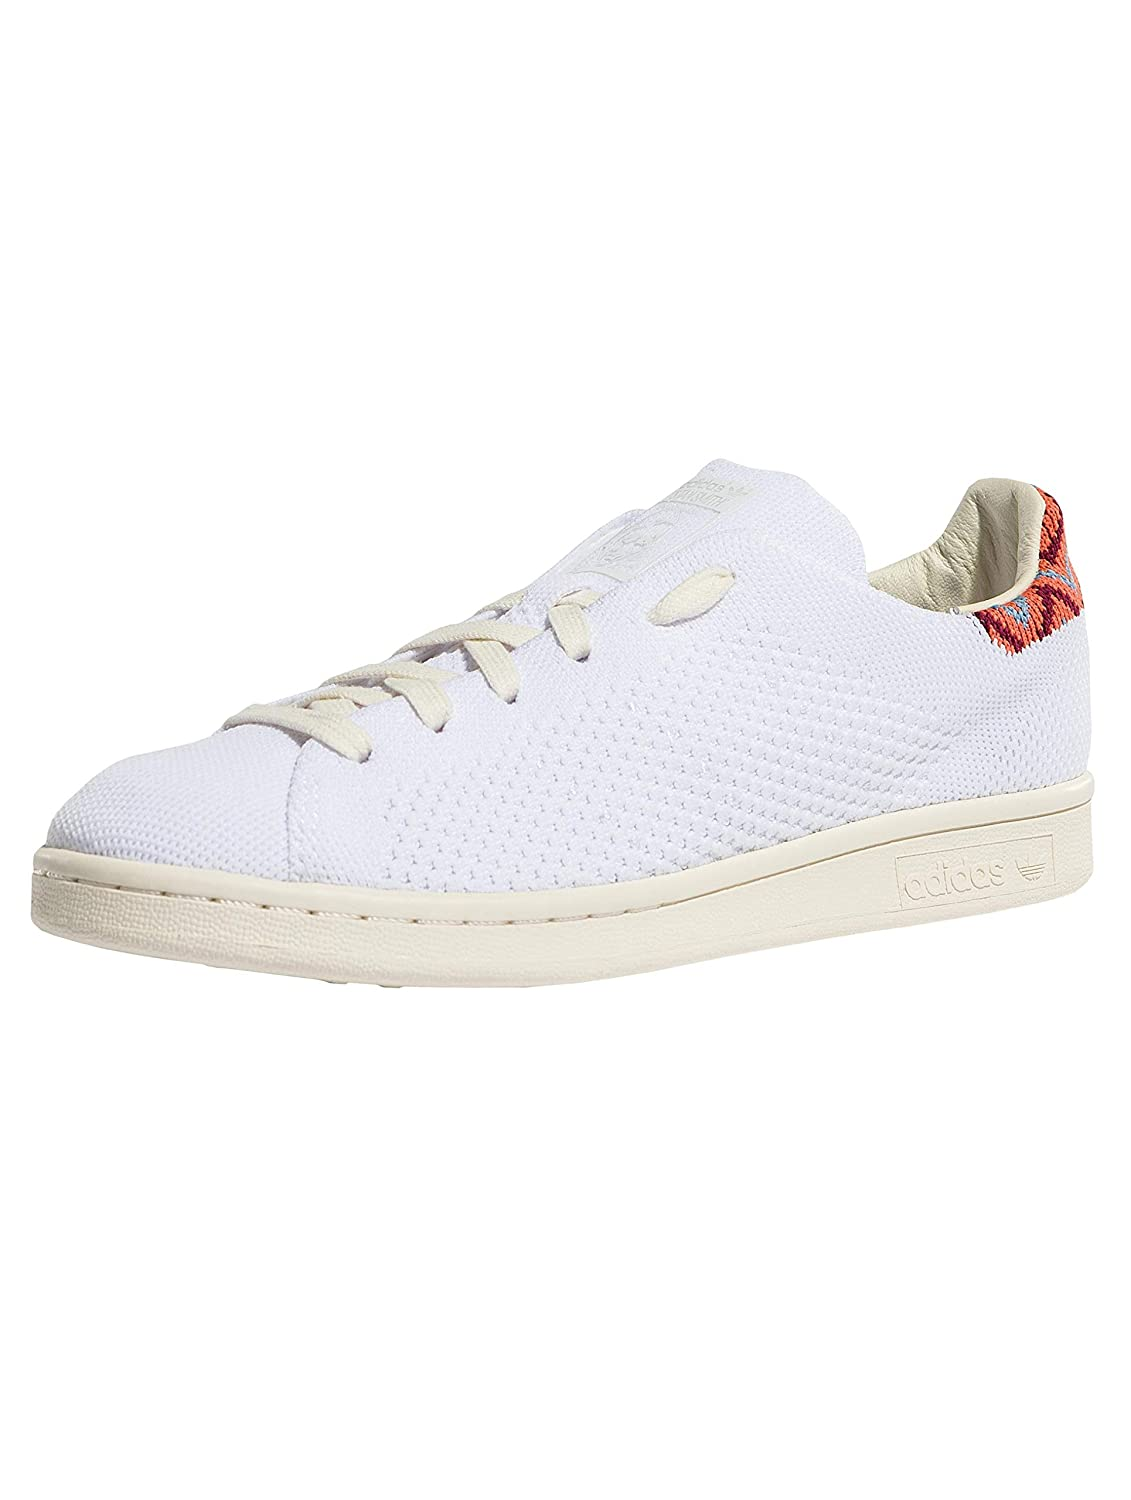 the latest ec0eb bd359 Adidas Stan Smith PK, da Fitness Bambino Scarpe nneetf334-Altro